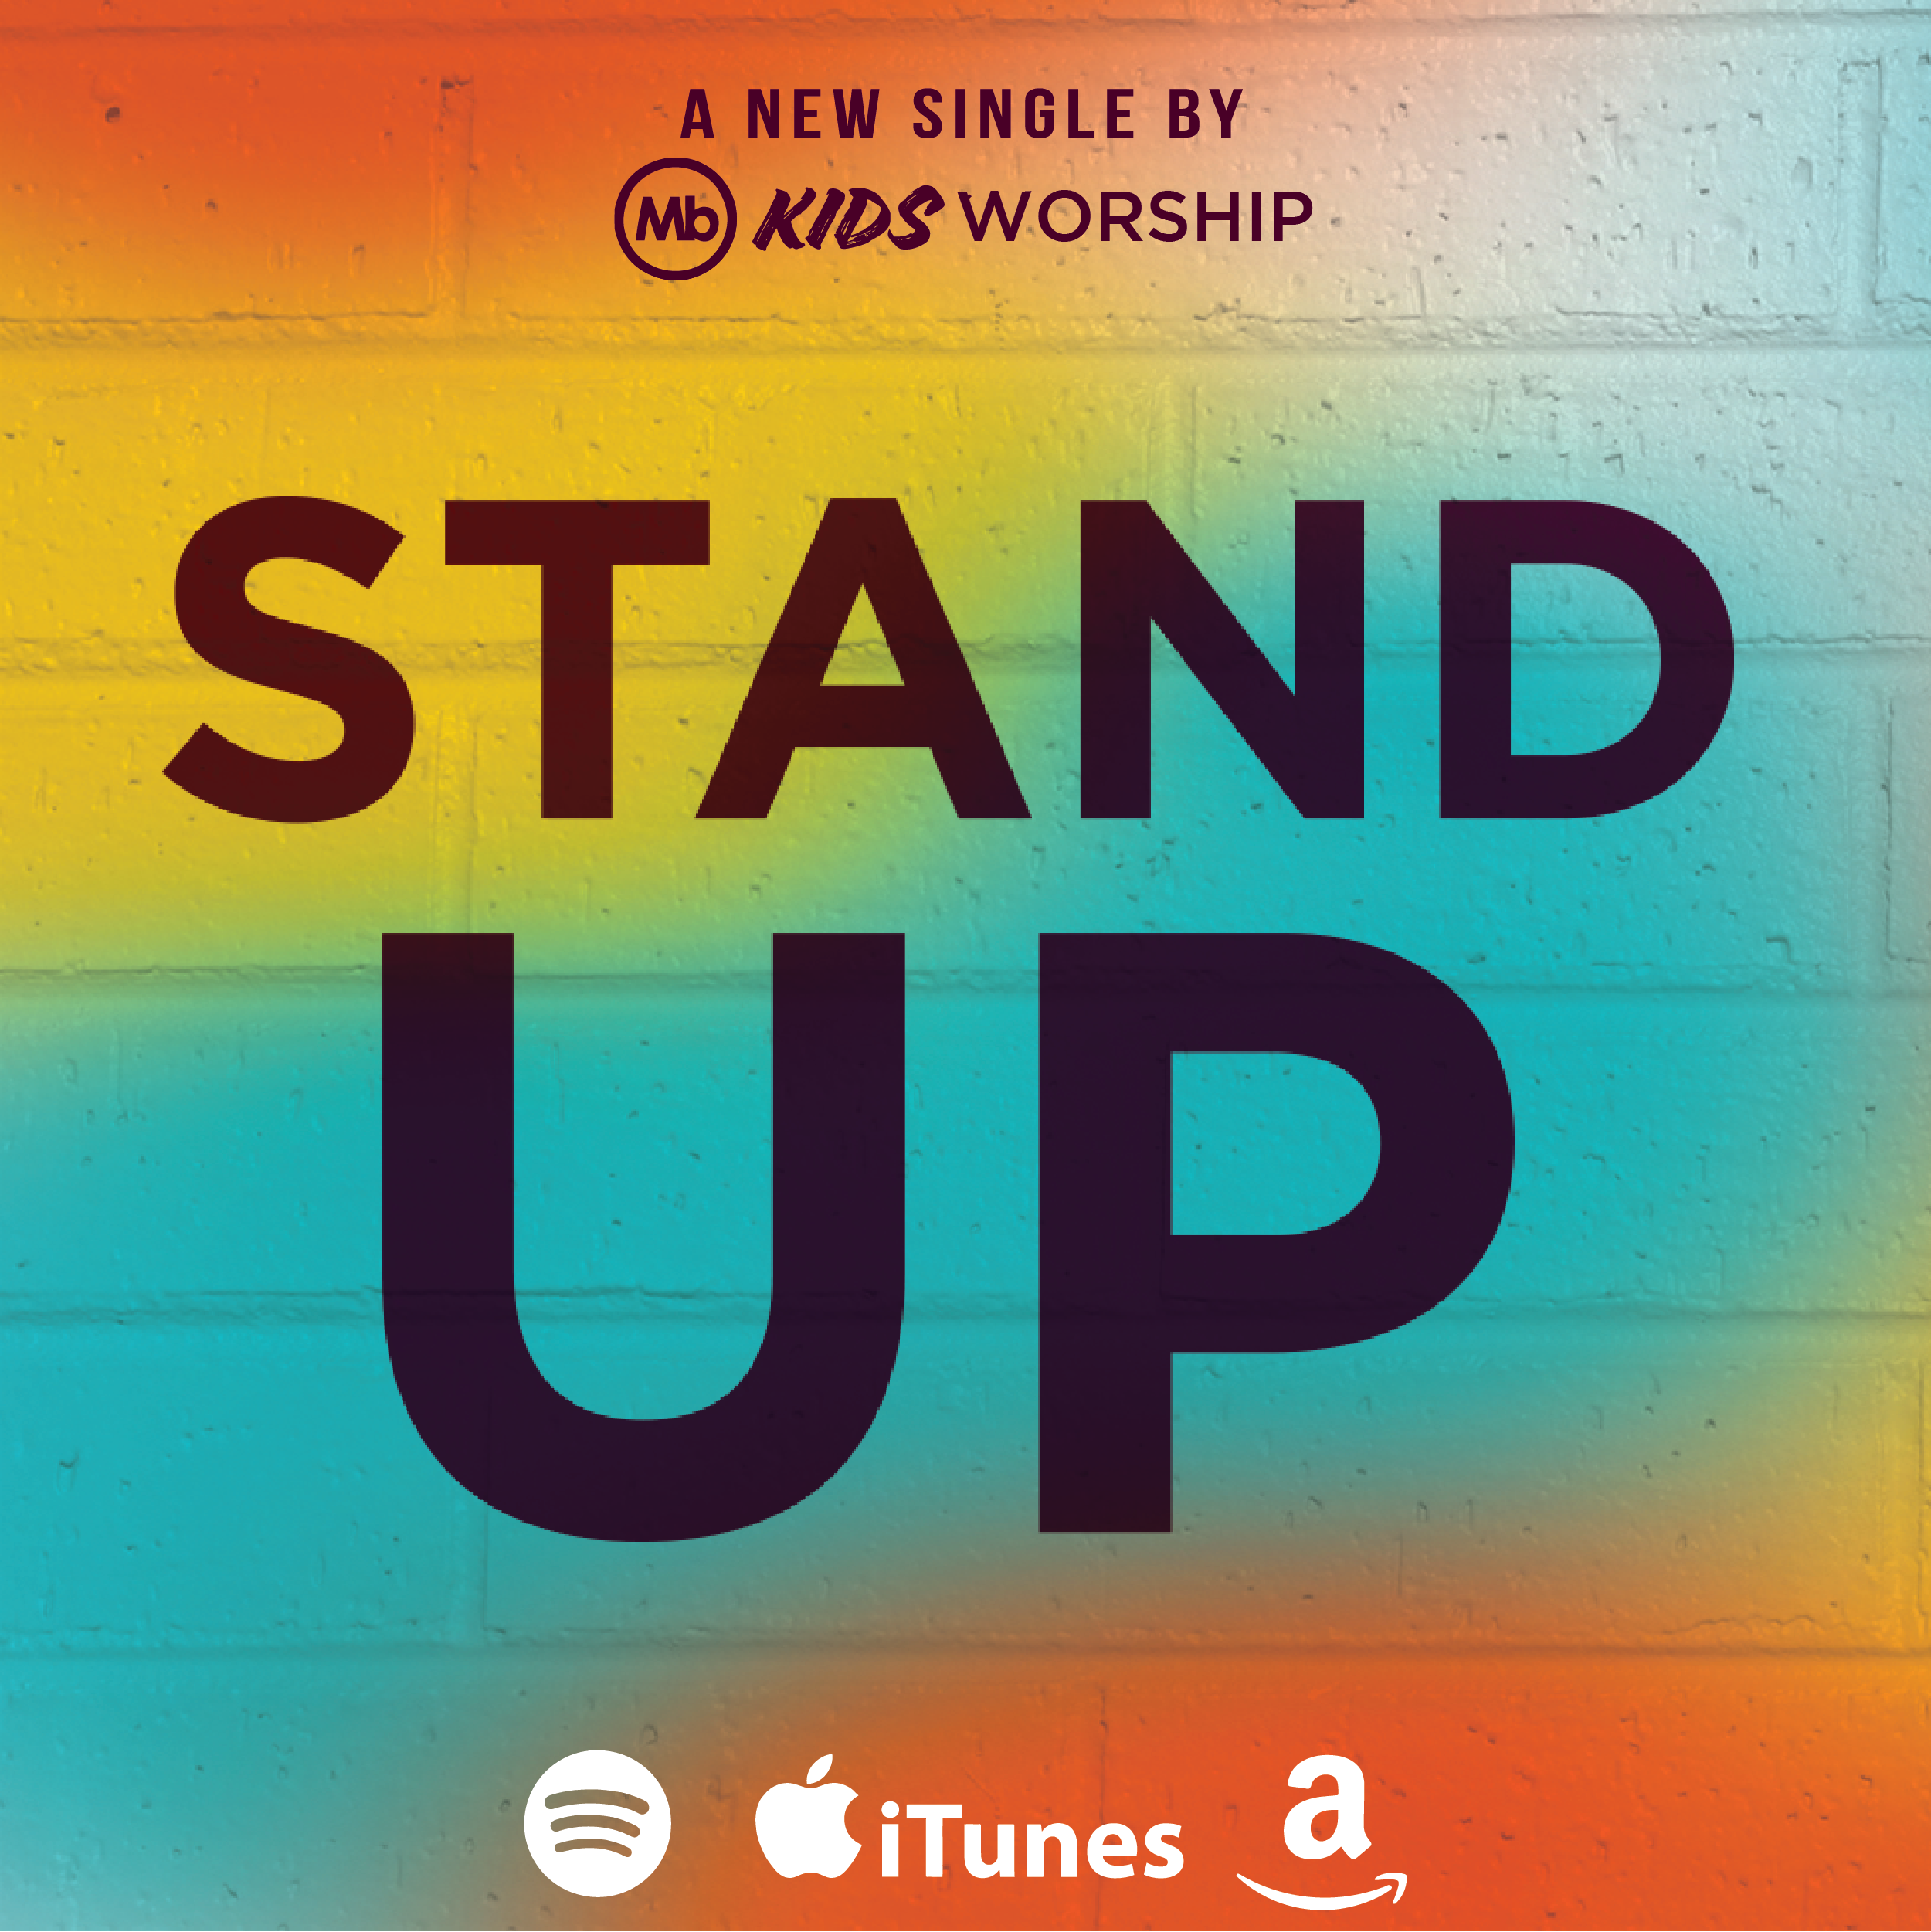 StandUp_Insta-02.png